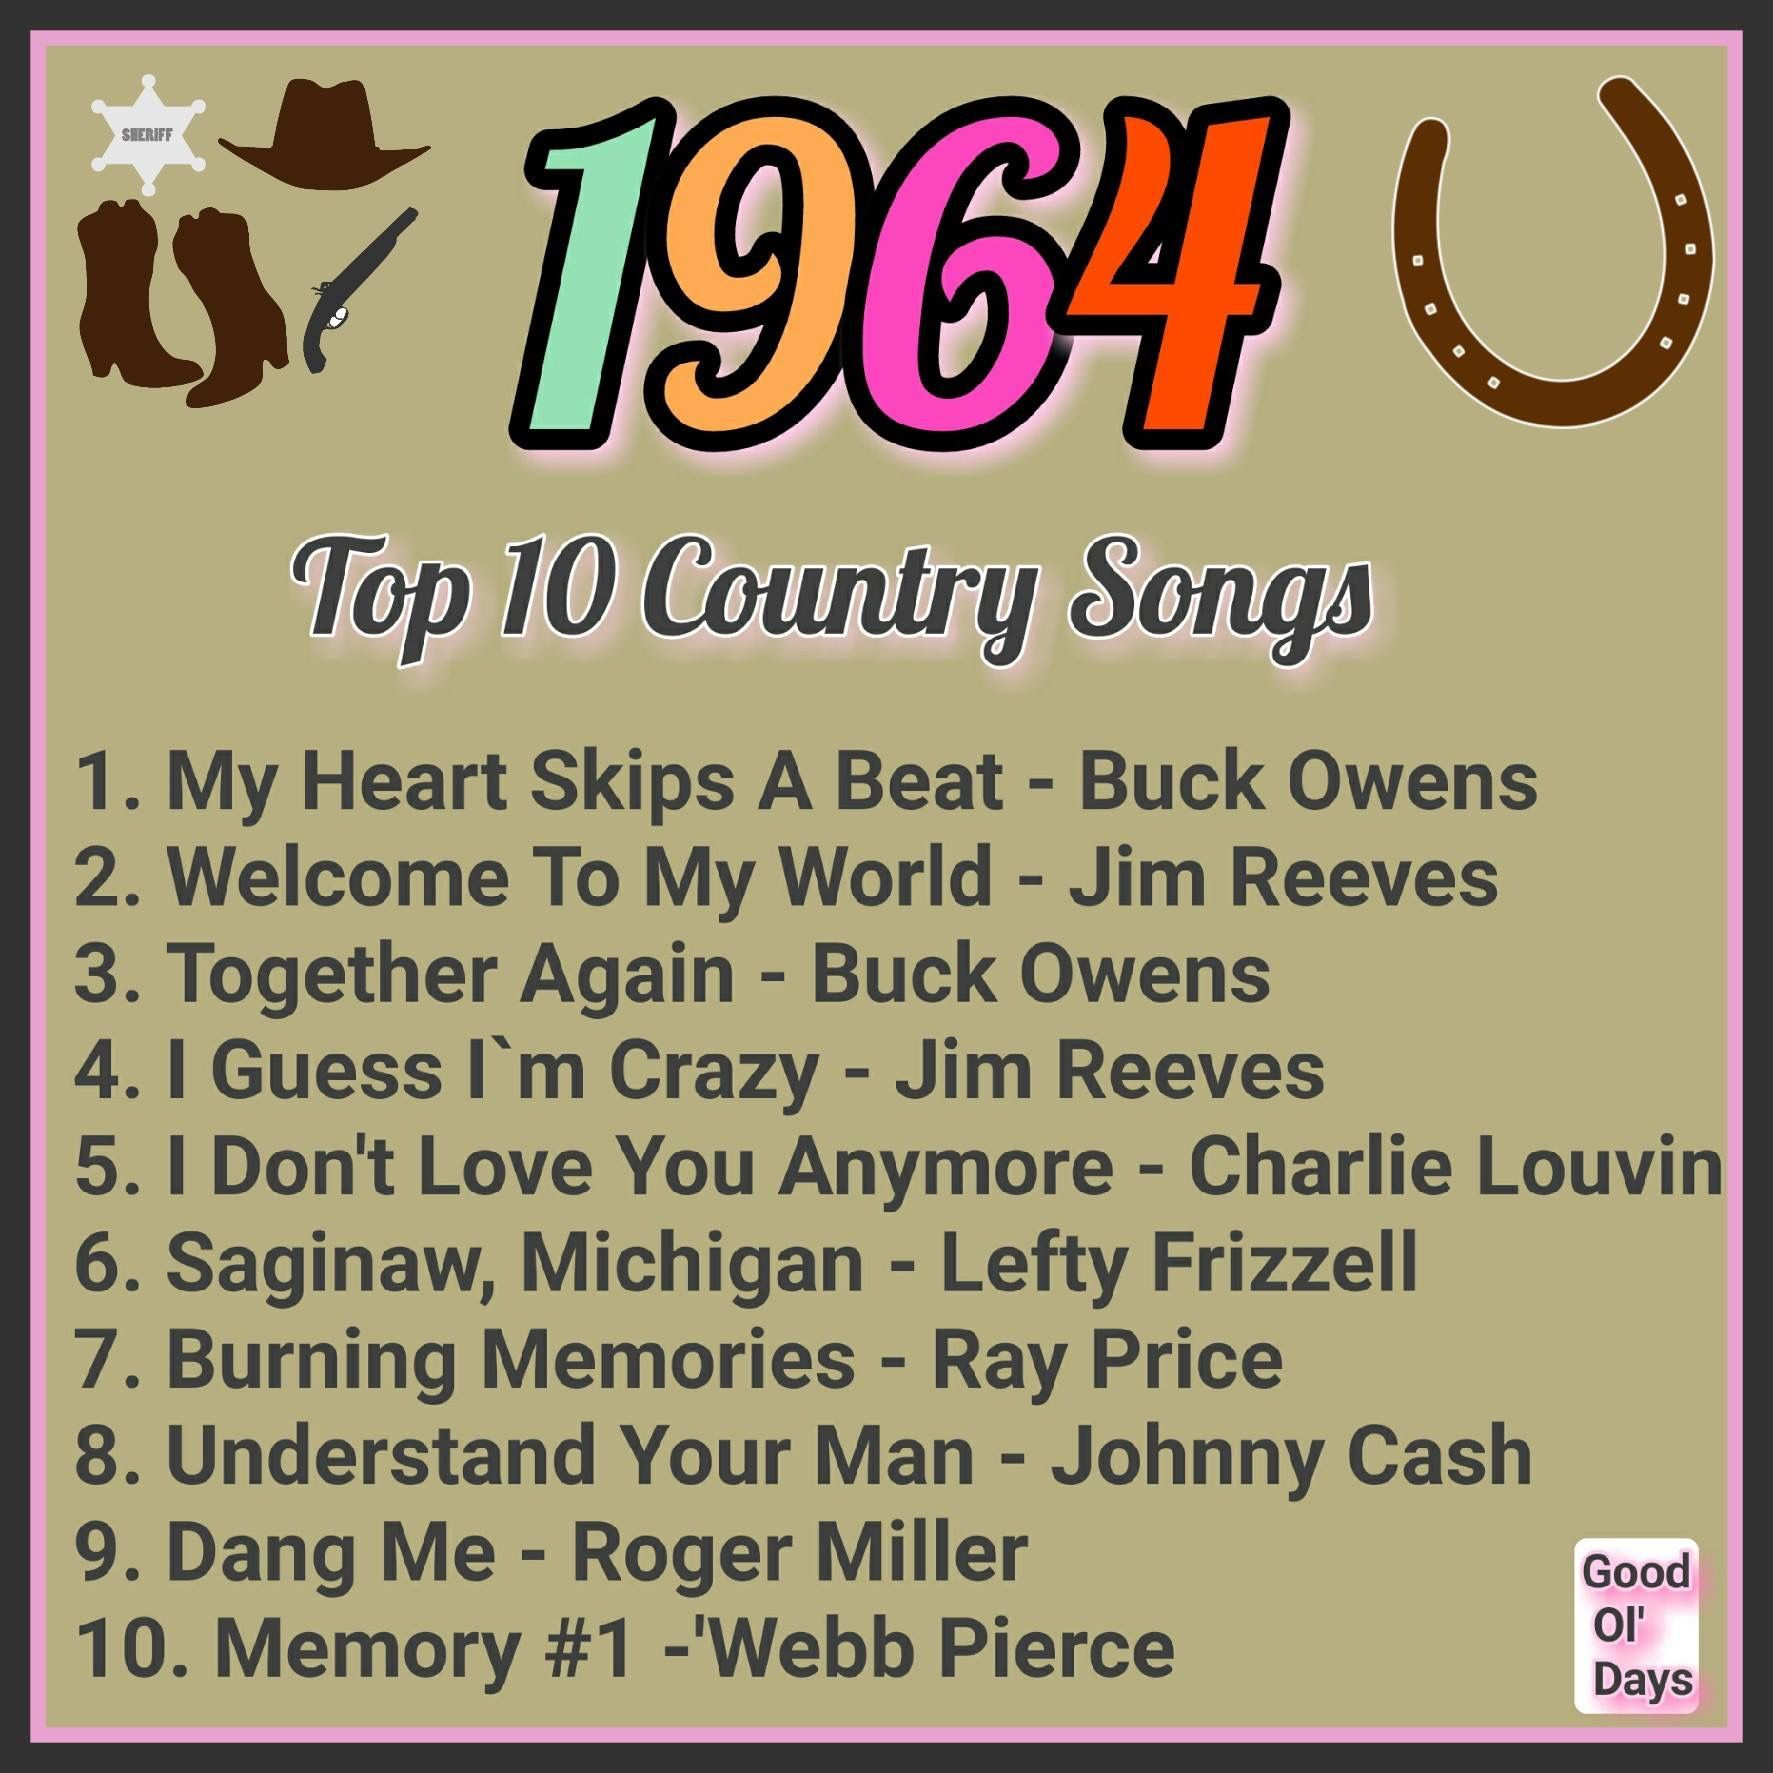 1964 Country Songs | cheers to 65 years | Music charts